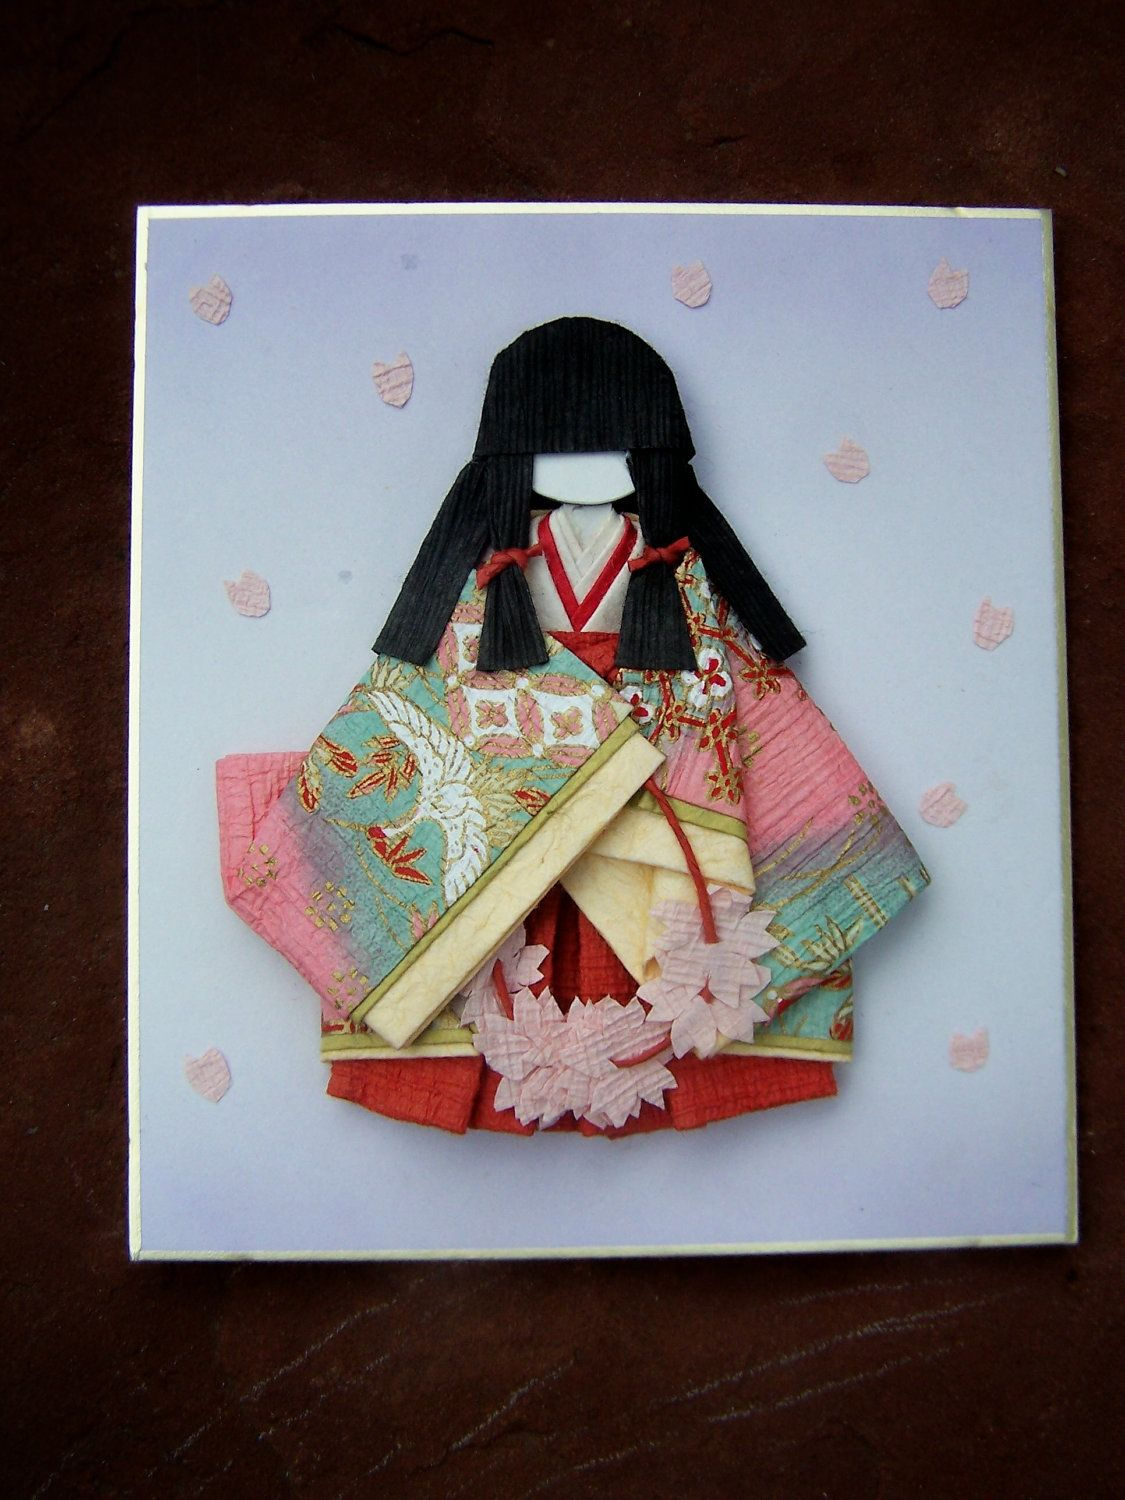 vintage home decor japanese paper art wall hanging washi vintage home decor japanese paper art wall hanging washi papercraft ceremonial dress chiyogami doll style via etsy